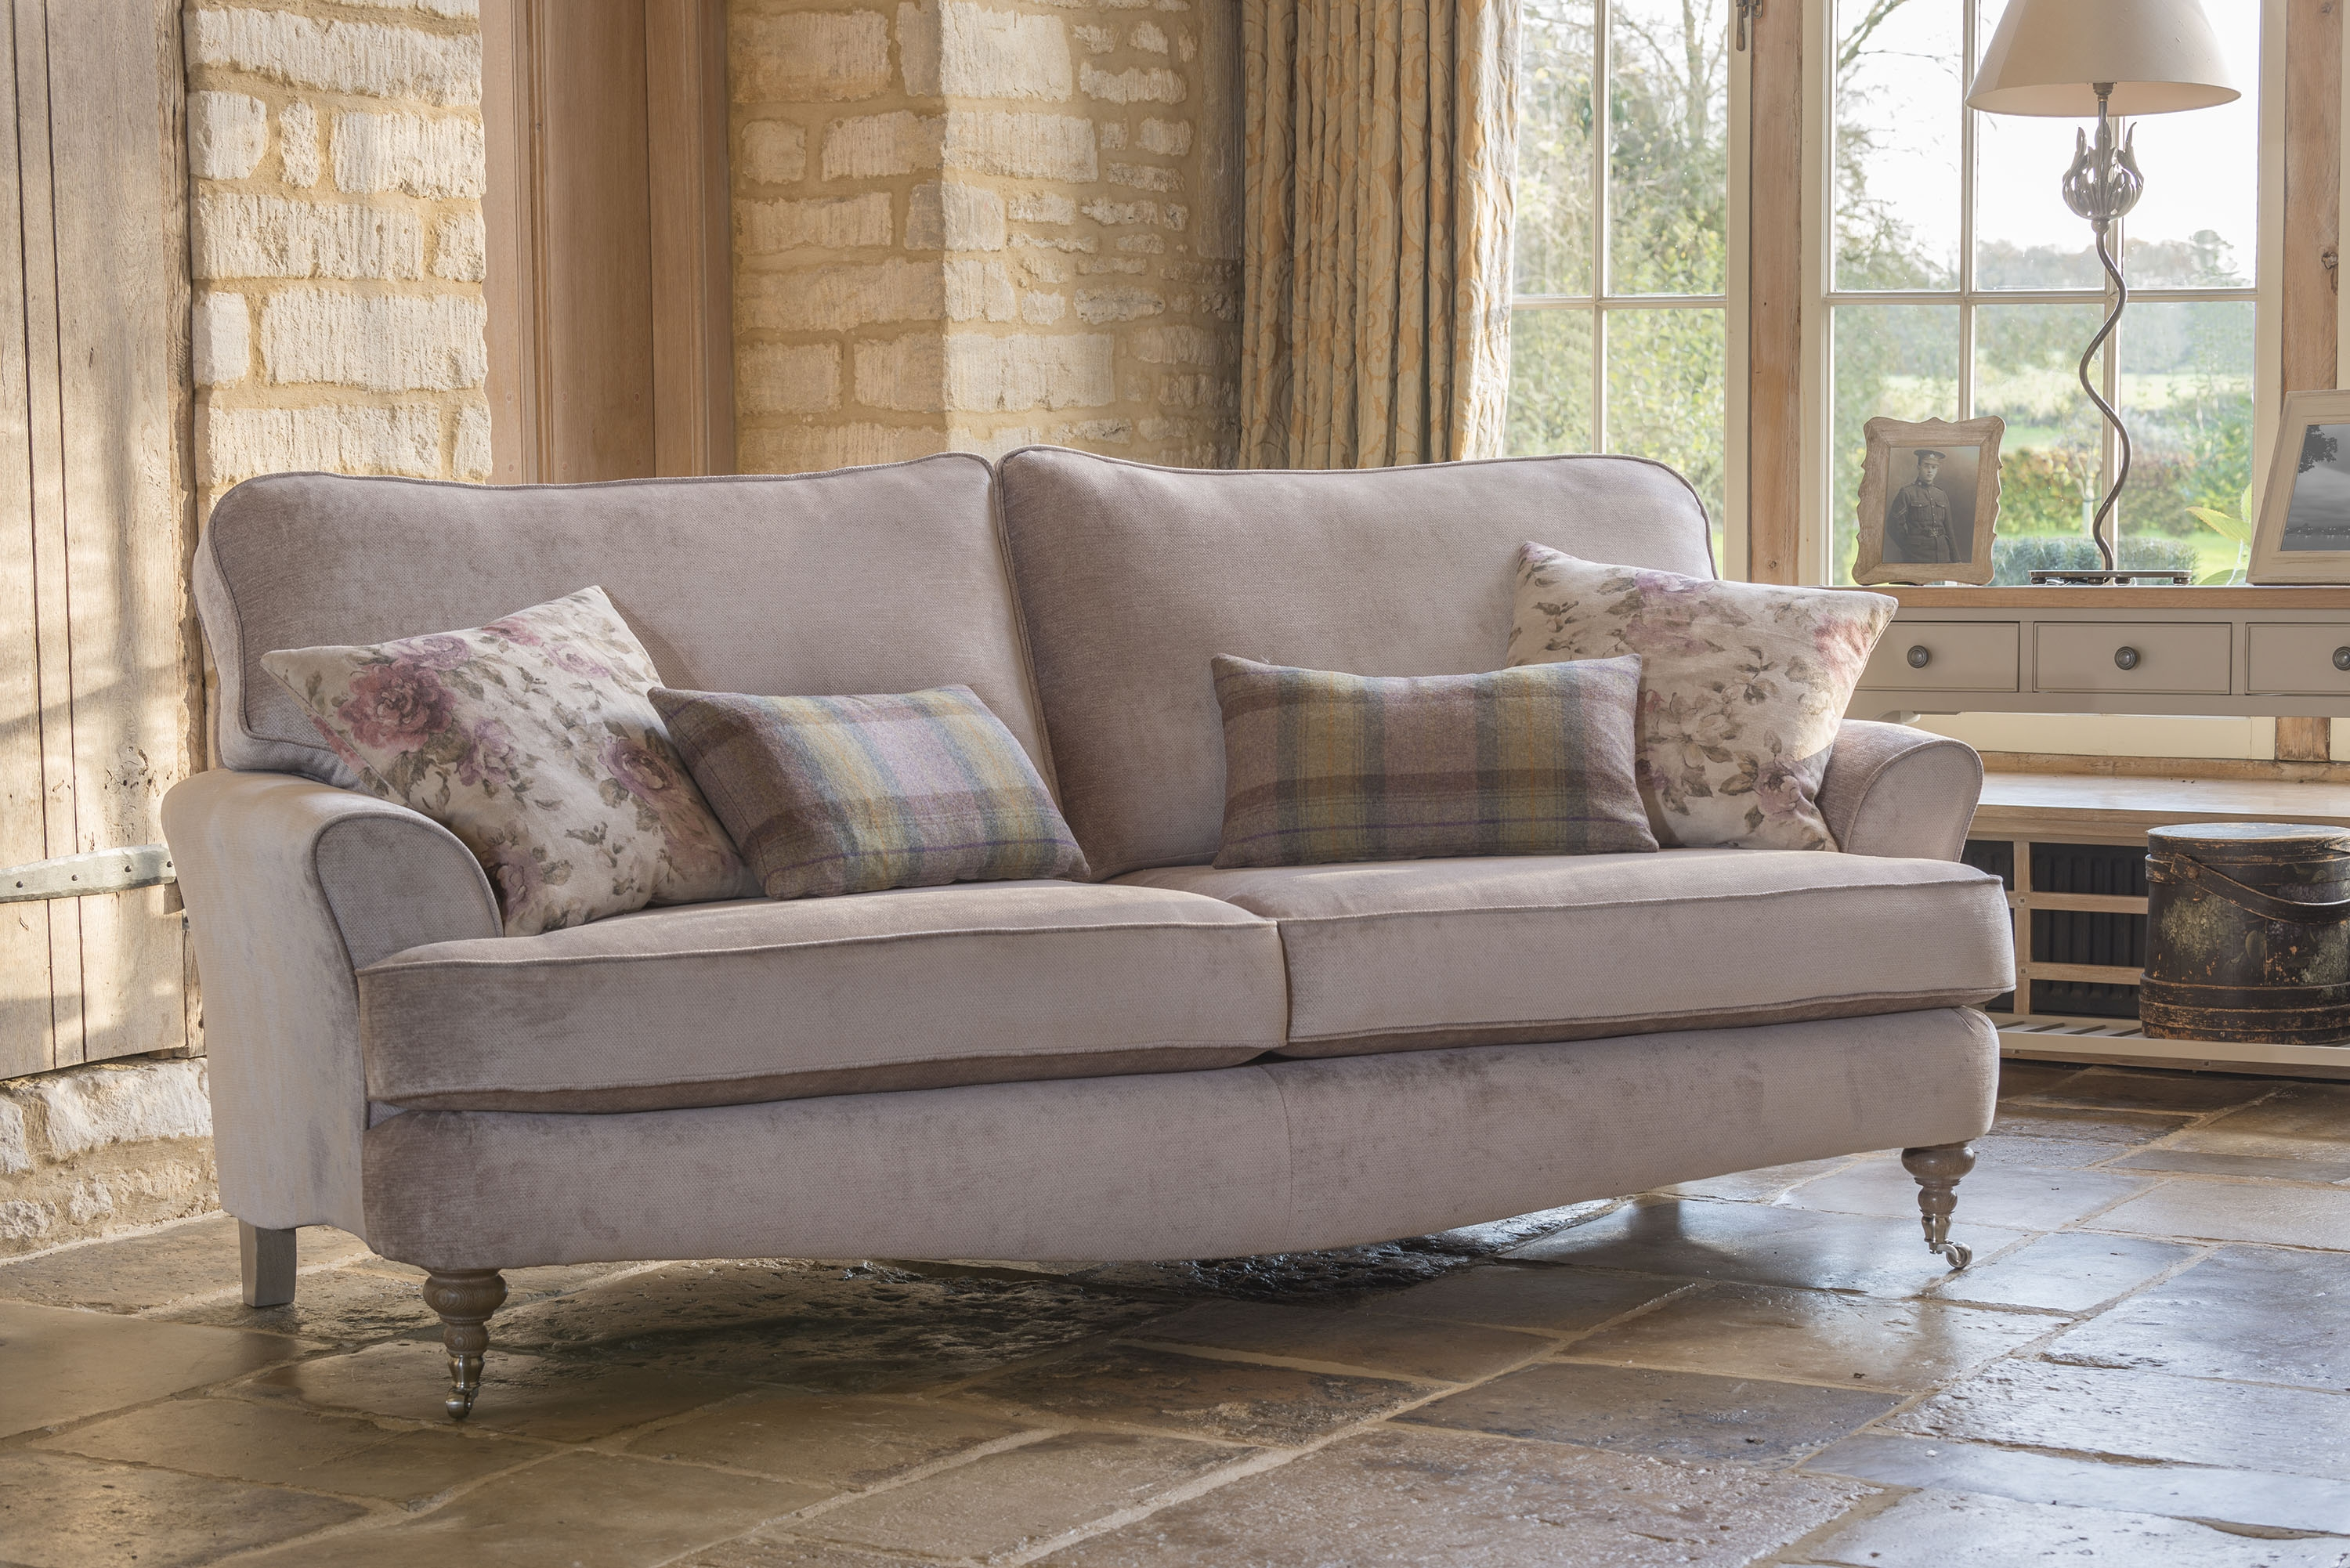 Prancer Stag Cushion Scarlet 2400 Pure Comfort Pure With Regard To Florence Grand Sofas (Image 14 of 15)